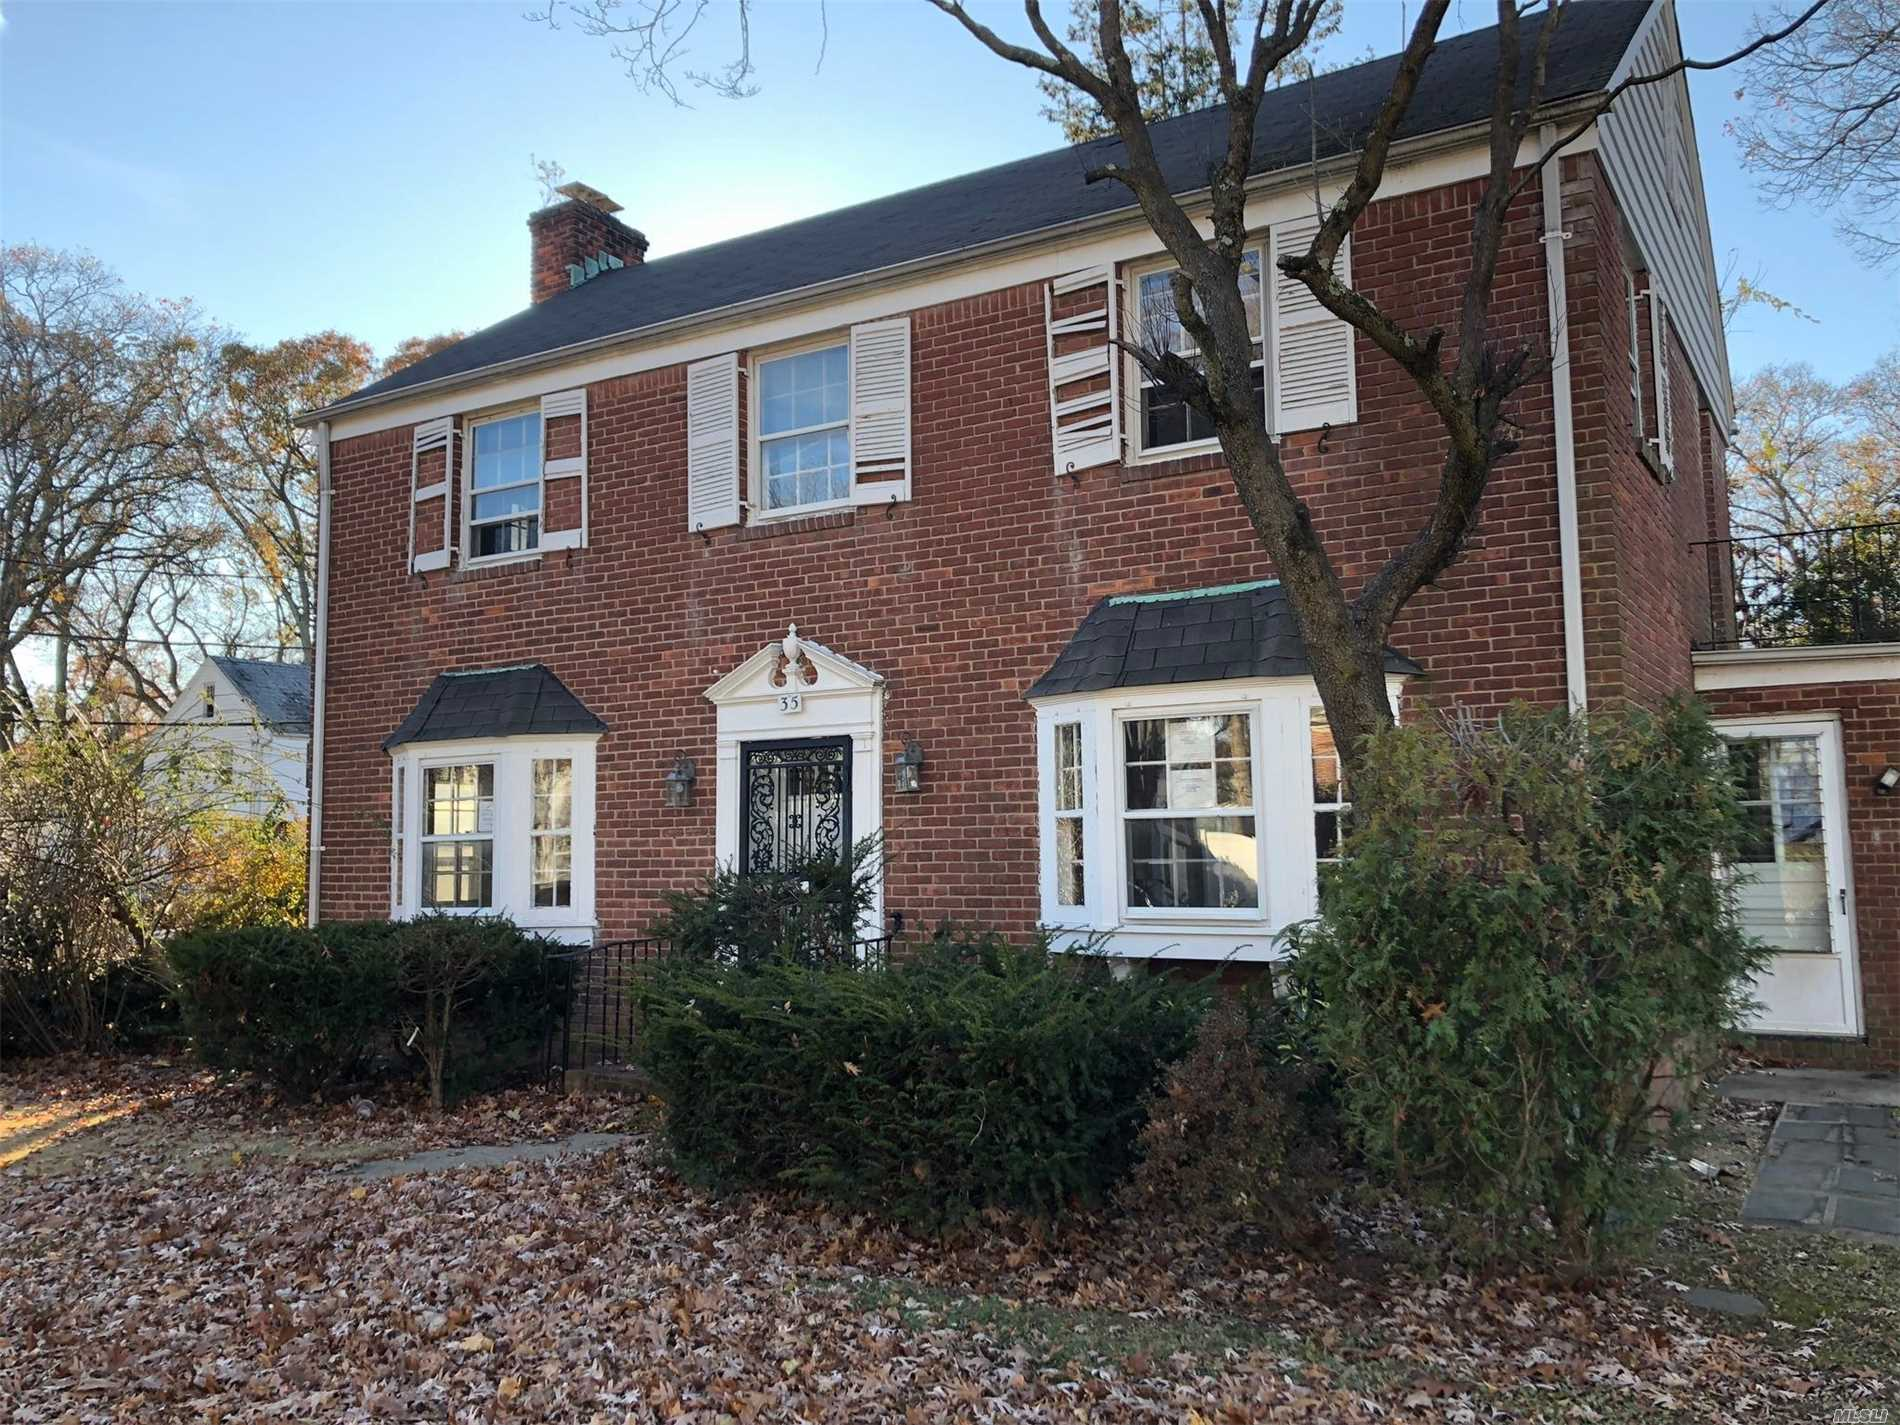 Colonial Style Home. This Home Features 3 Bedrooms, 1.5 Baths, Formal Dining Room, Eat In Kitchen & 1 Car Garage. New Roof. Centrally Located To All. Don't Miss This Opportunity!